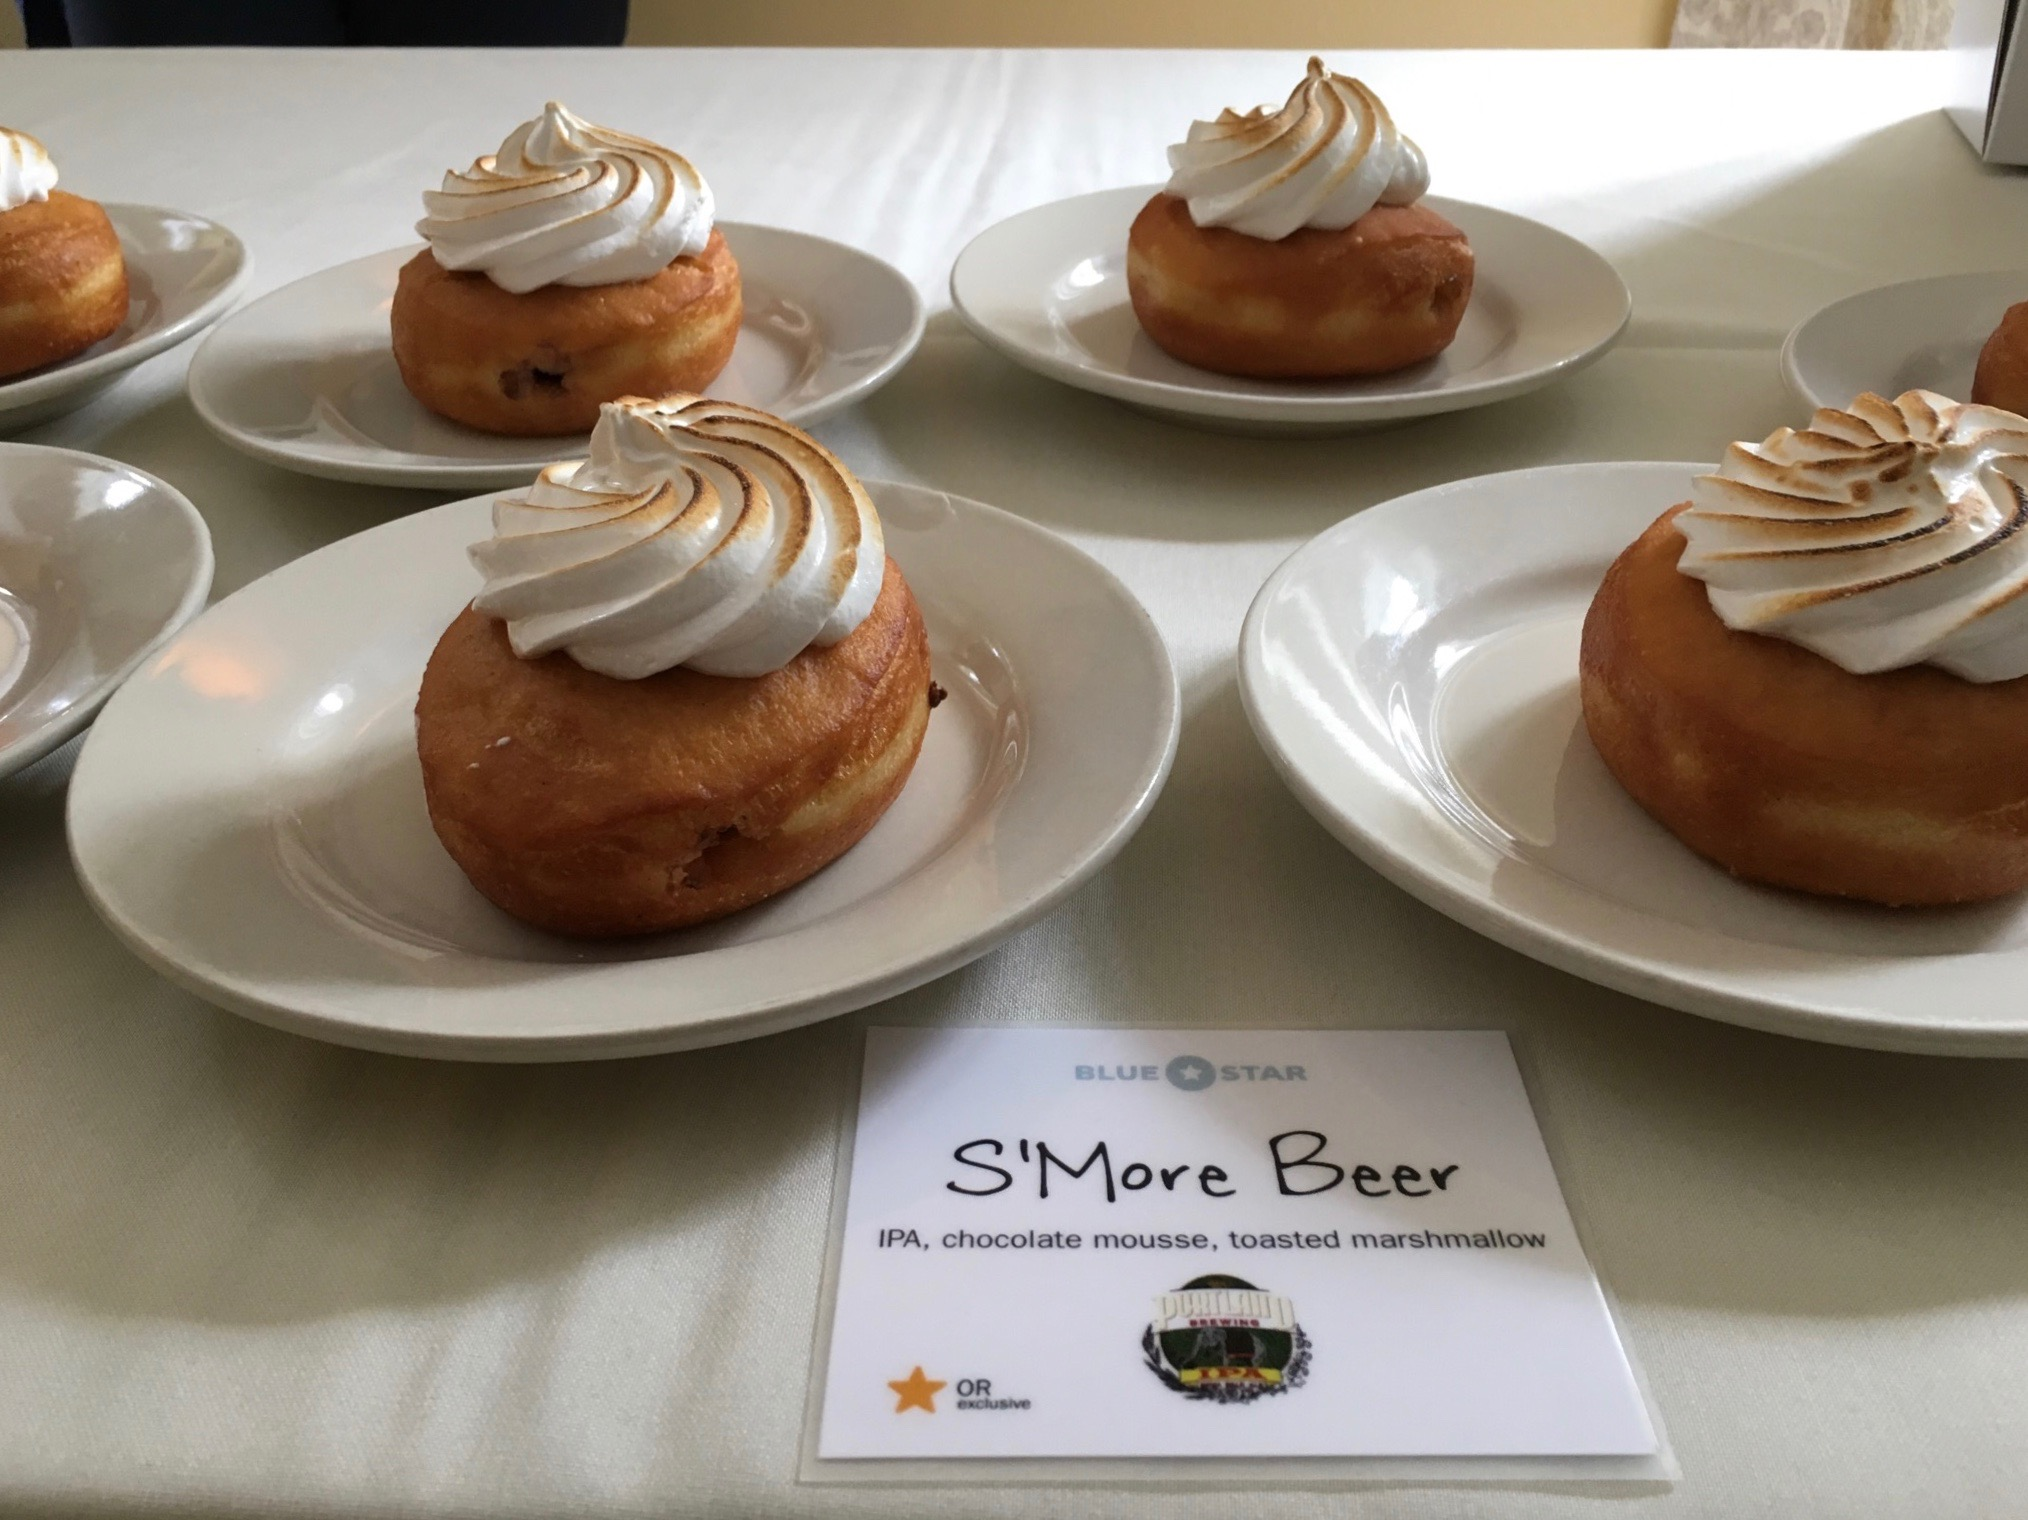 The PDX Beer Week Donut, S'more Beer Doughnut by Blue Star. (photo by Cat Stelzer)